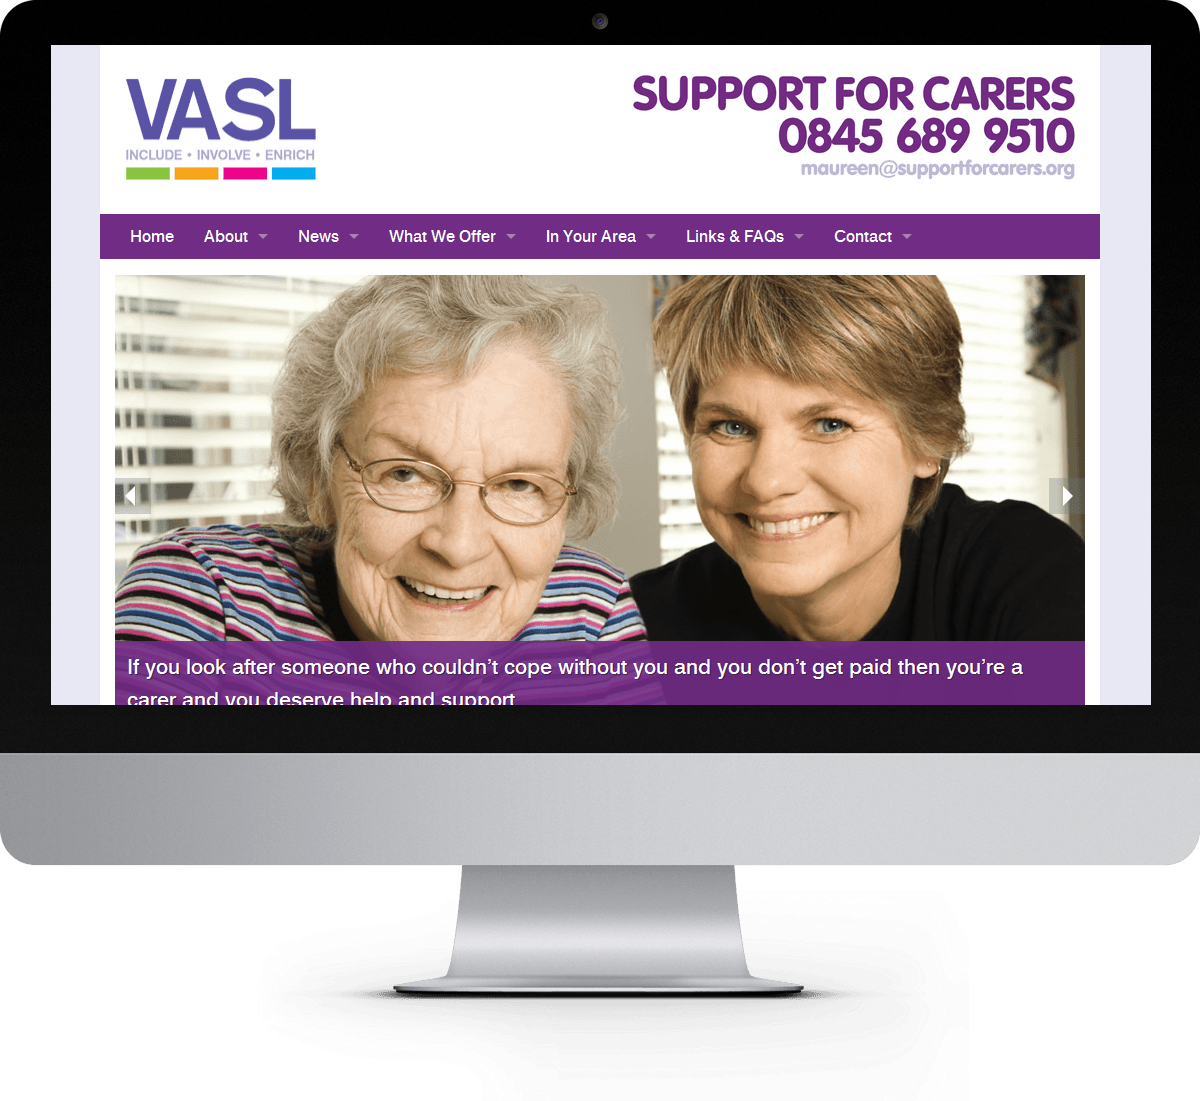 Support for Carers website